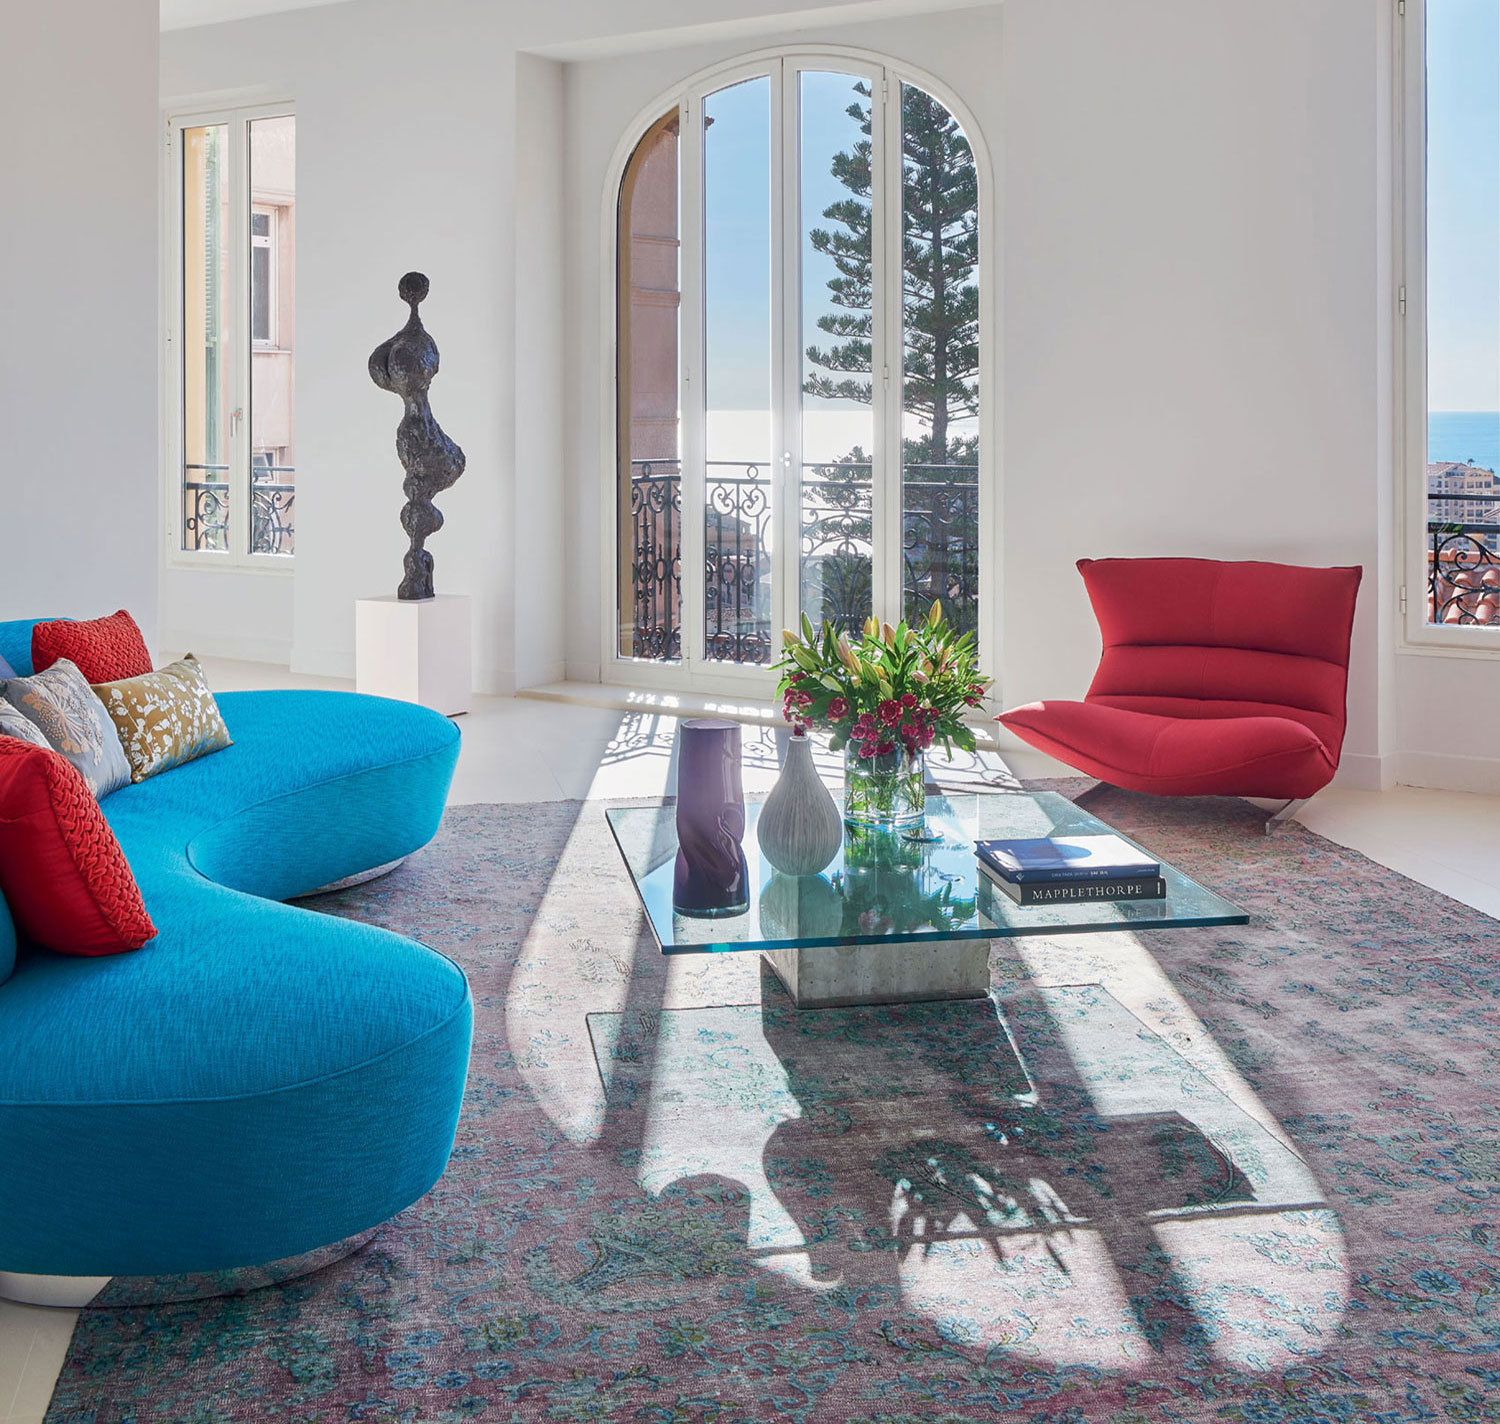 Villa San Martin was totally renovated five years ago, retaining its original façade. The luxurious living spaces offer incredible views of the medieval village of the Old Town, a labyrinth of cobbled streets and squares.